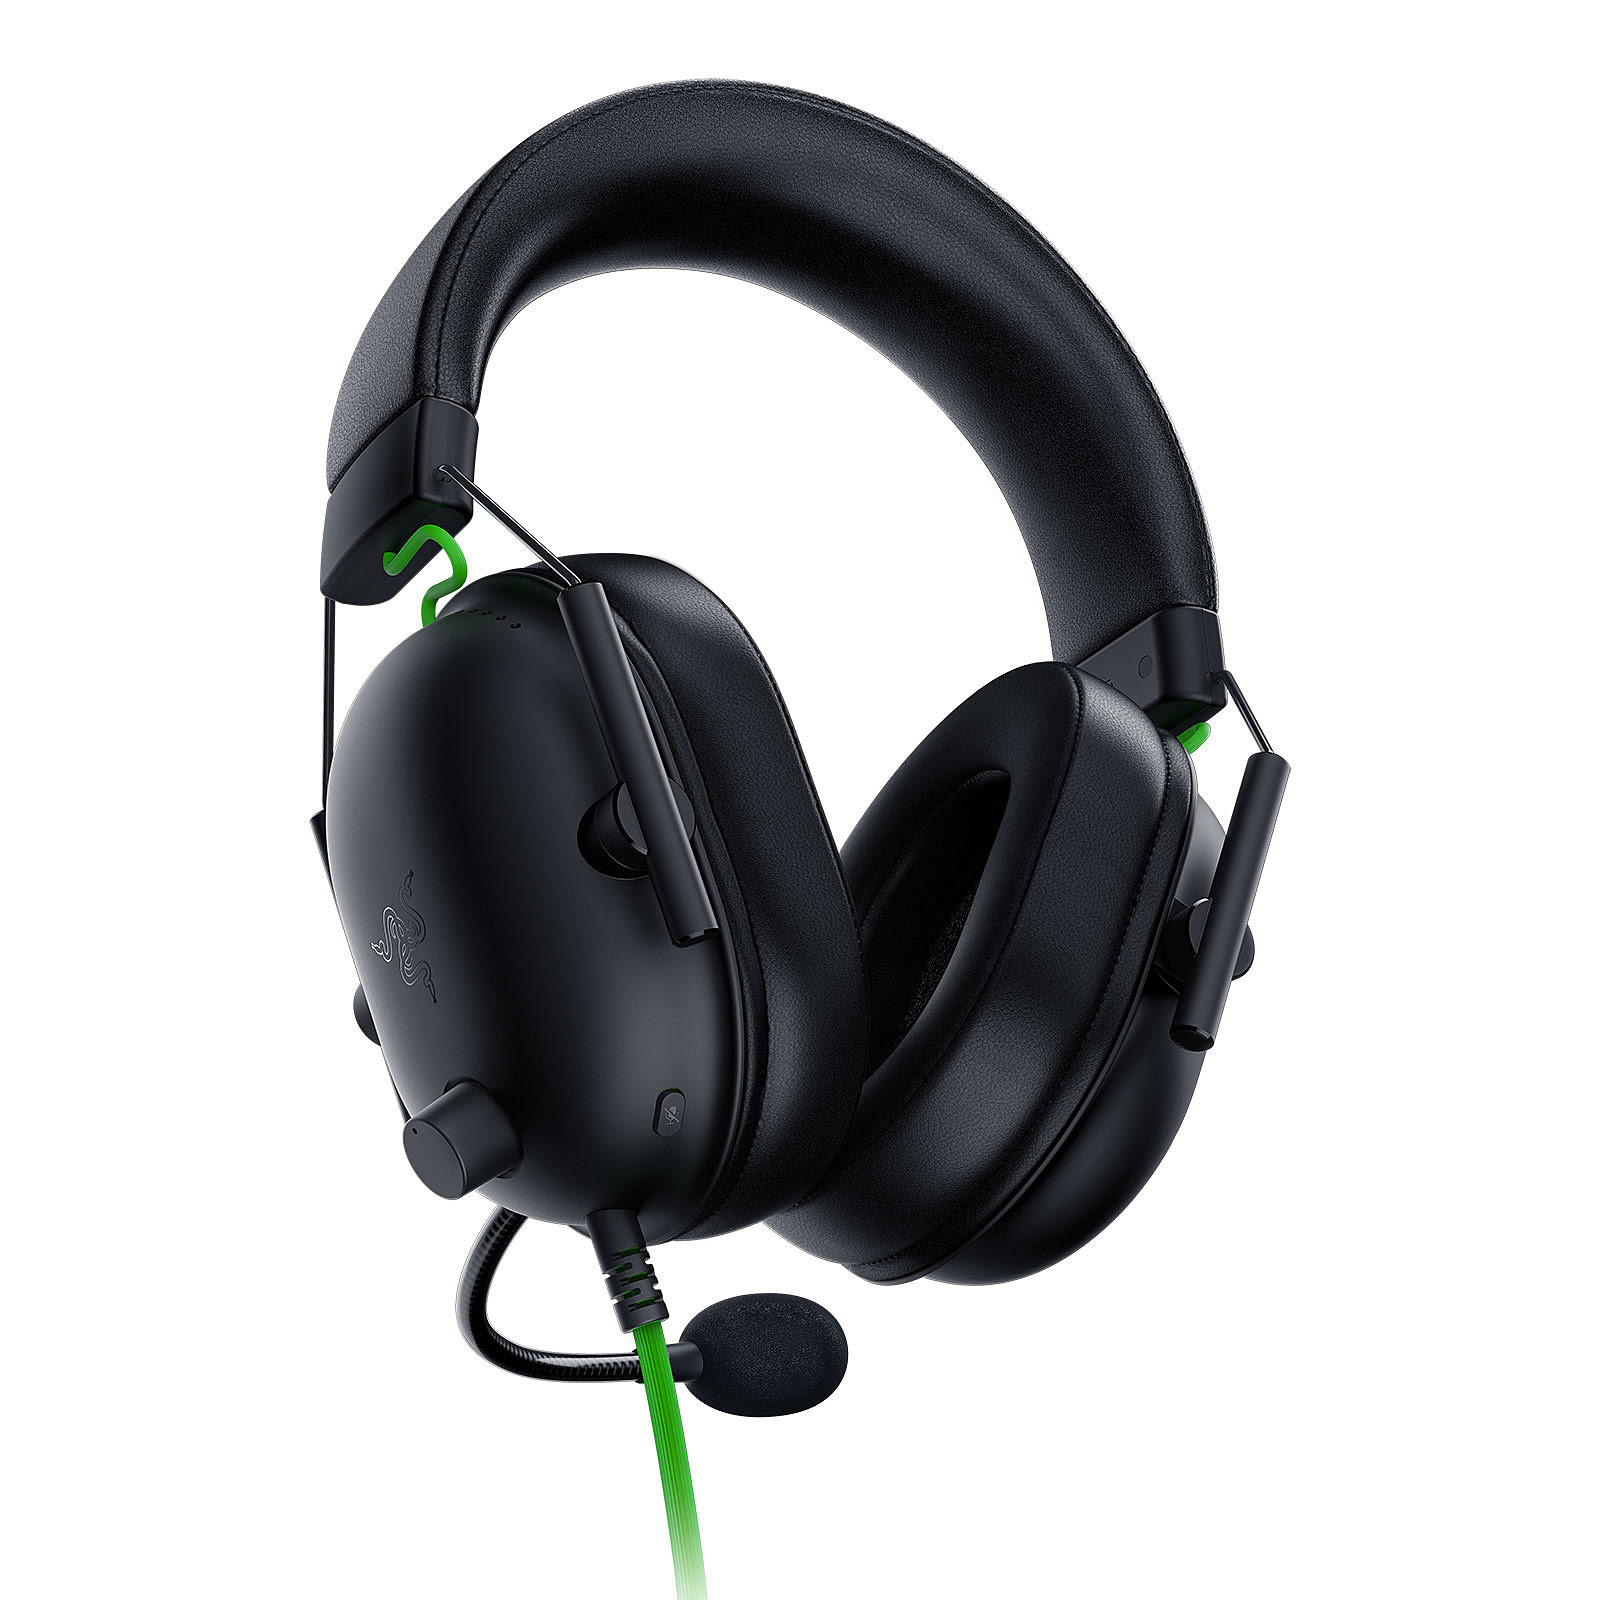 Razer Blackshark V2 X 7.1 Surround Noir - Micro-casque - 4